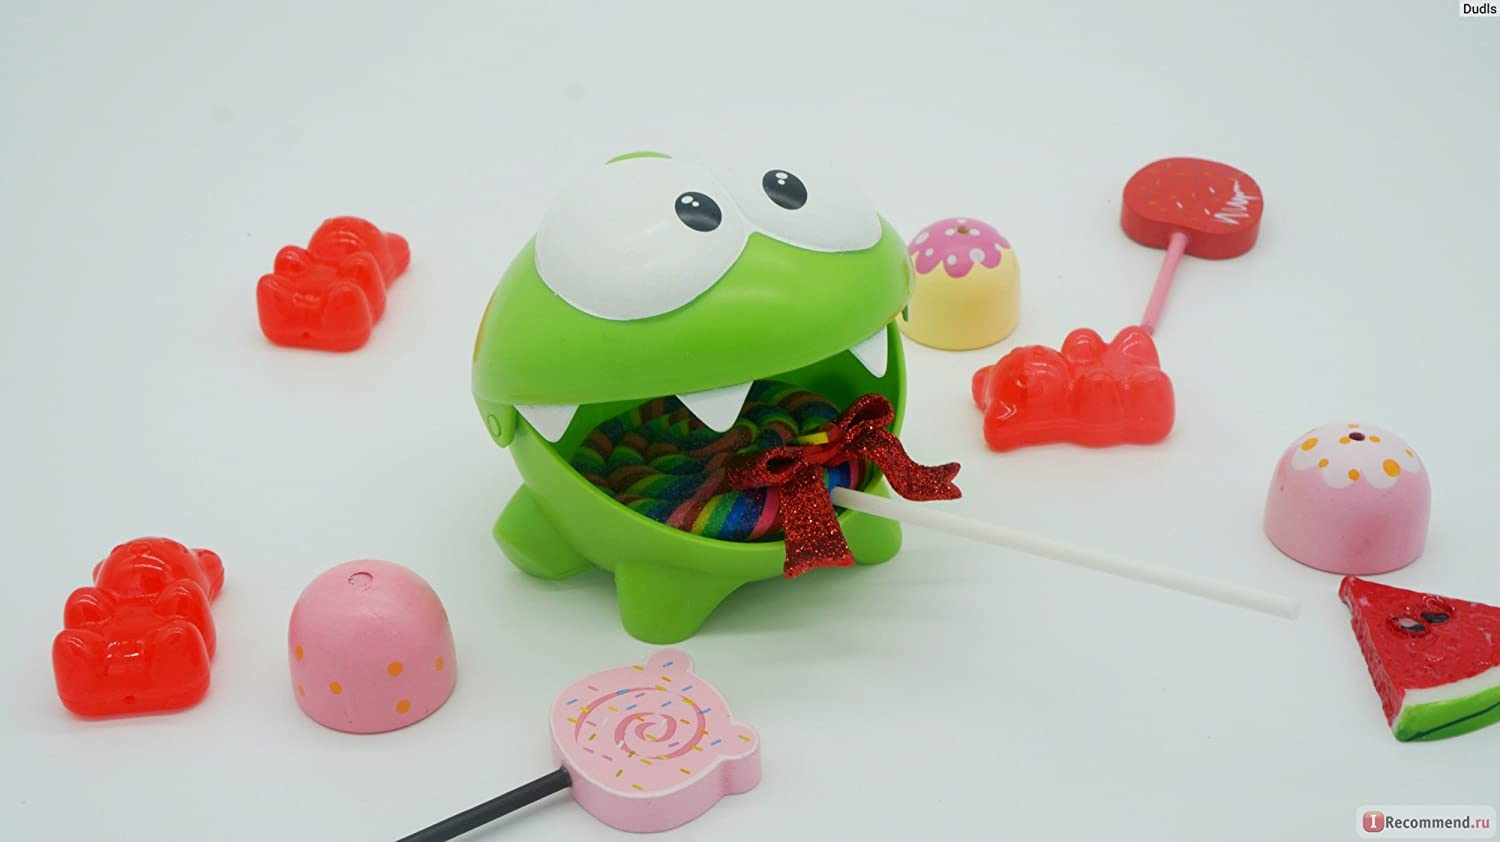 Om Nom СUT THE ROPE PLASTIC TOY Fruit Lunch box Om Nom open mouth Cut The Rope Figures-Cut the Rope Stuffed Animal-Cut The Rope Toys Om-nom Figure Plastic Nommies-om nom frog-cut the rope magic